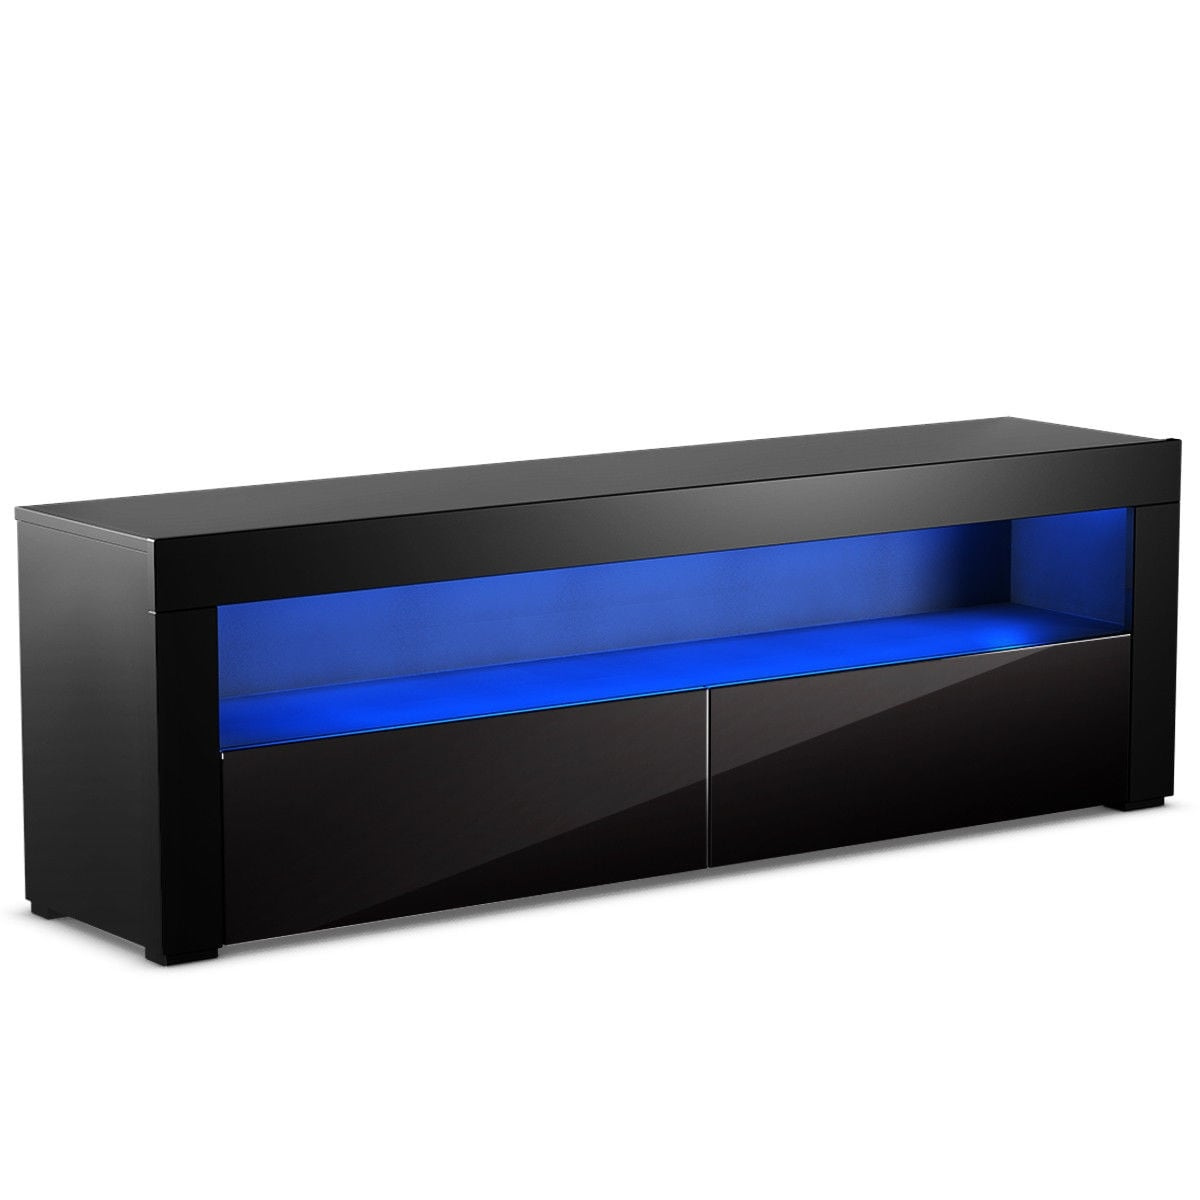 Shop Costway High Gloss Tv Stand Unit Cabinet Console Furniture W